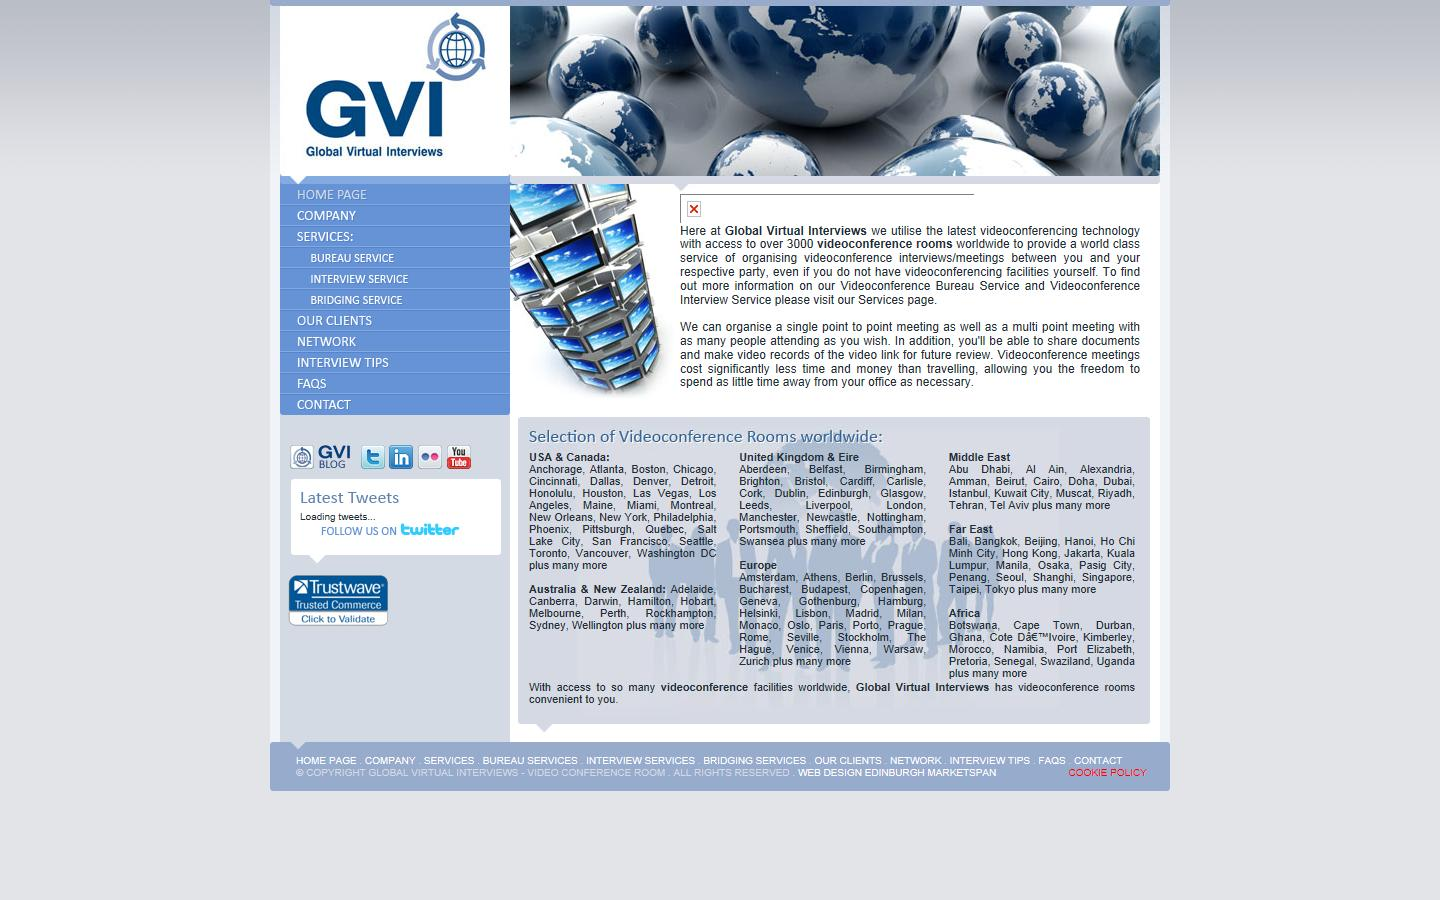 gvi global virtual interviews west lothian scotland eh rg company details for gvi global virtual interviews